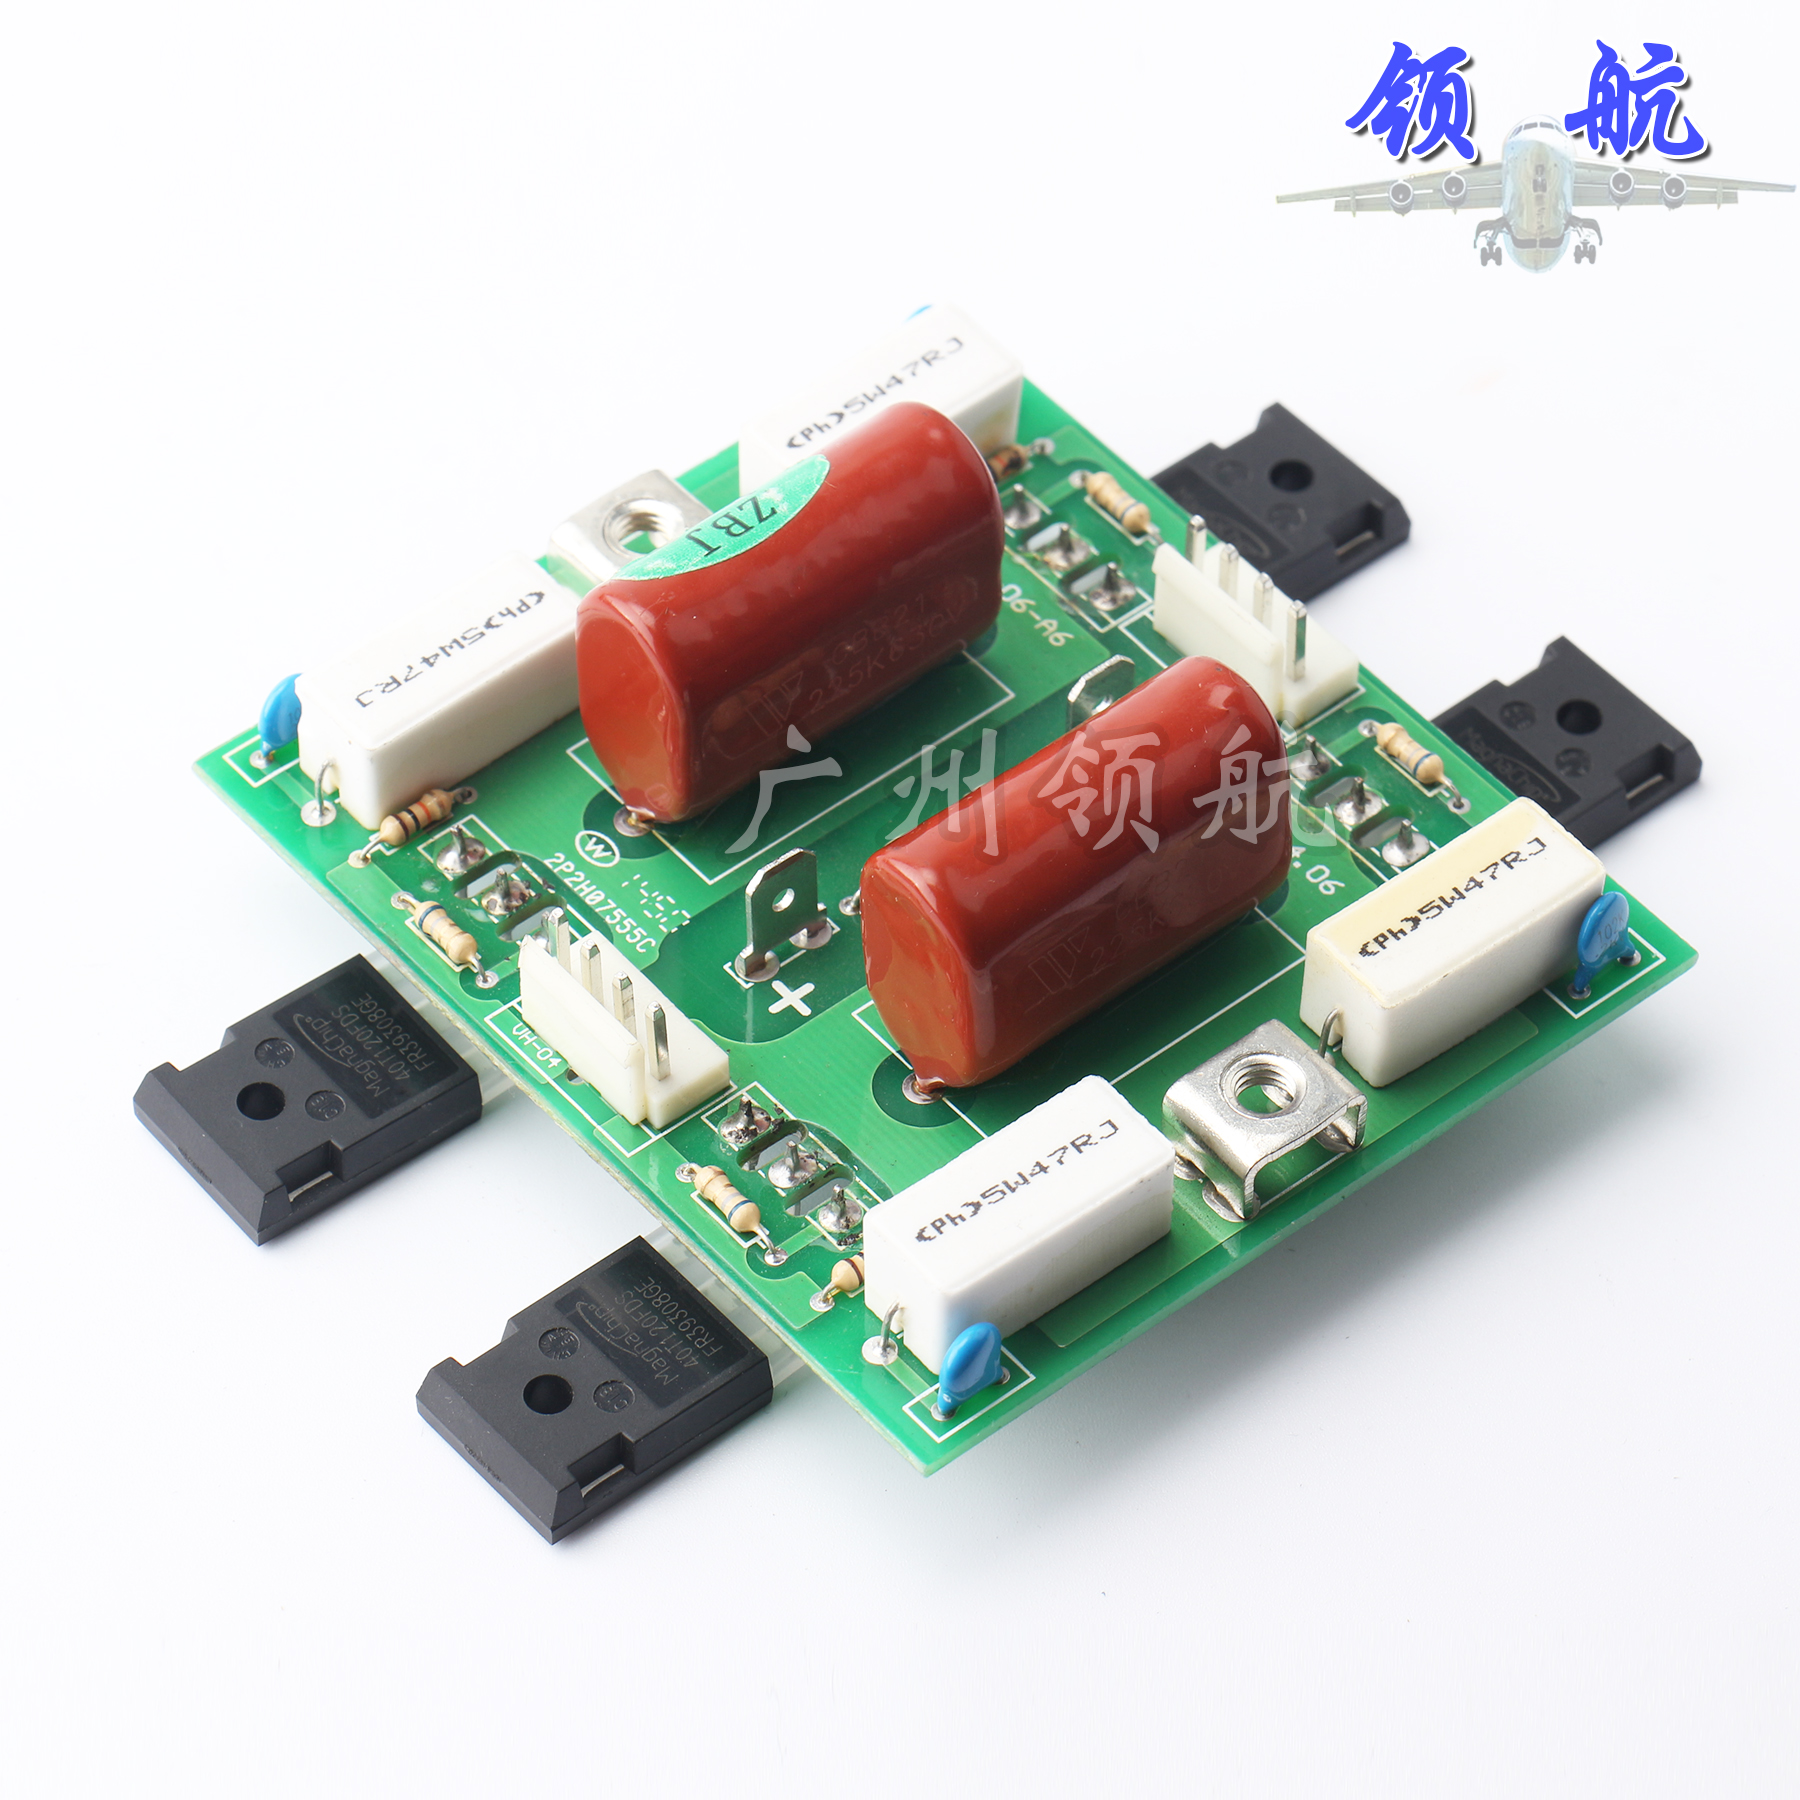 Inverter DC welding machine ZX7400T 400S IGBT inverter board PCB accessories все цены